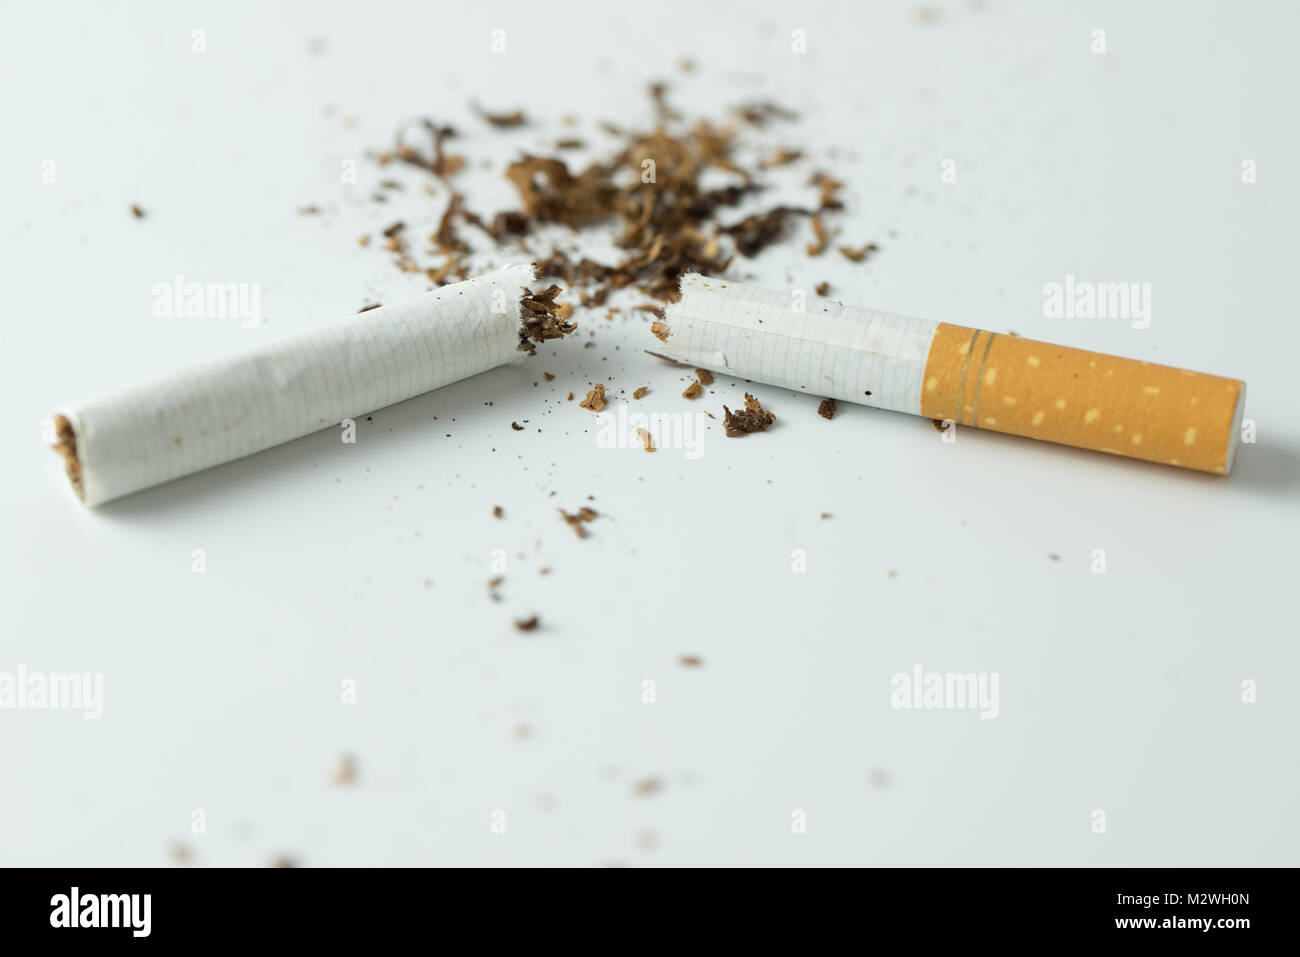 Quit smoking concept by breaking the cigarette - Stock Image